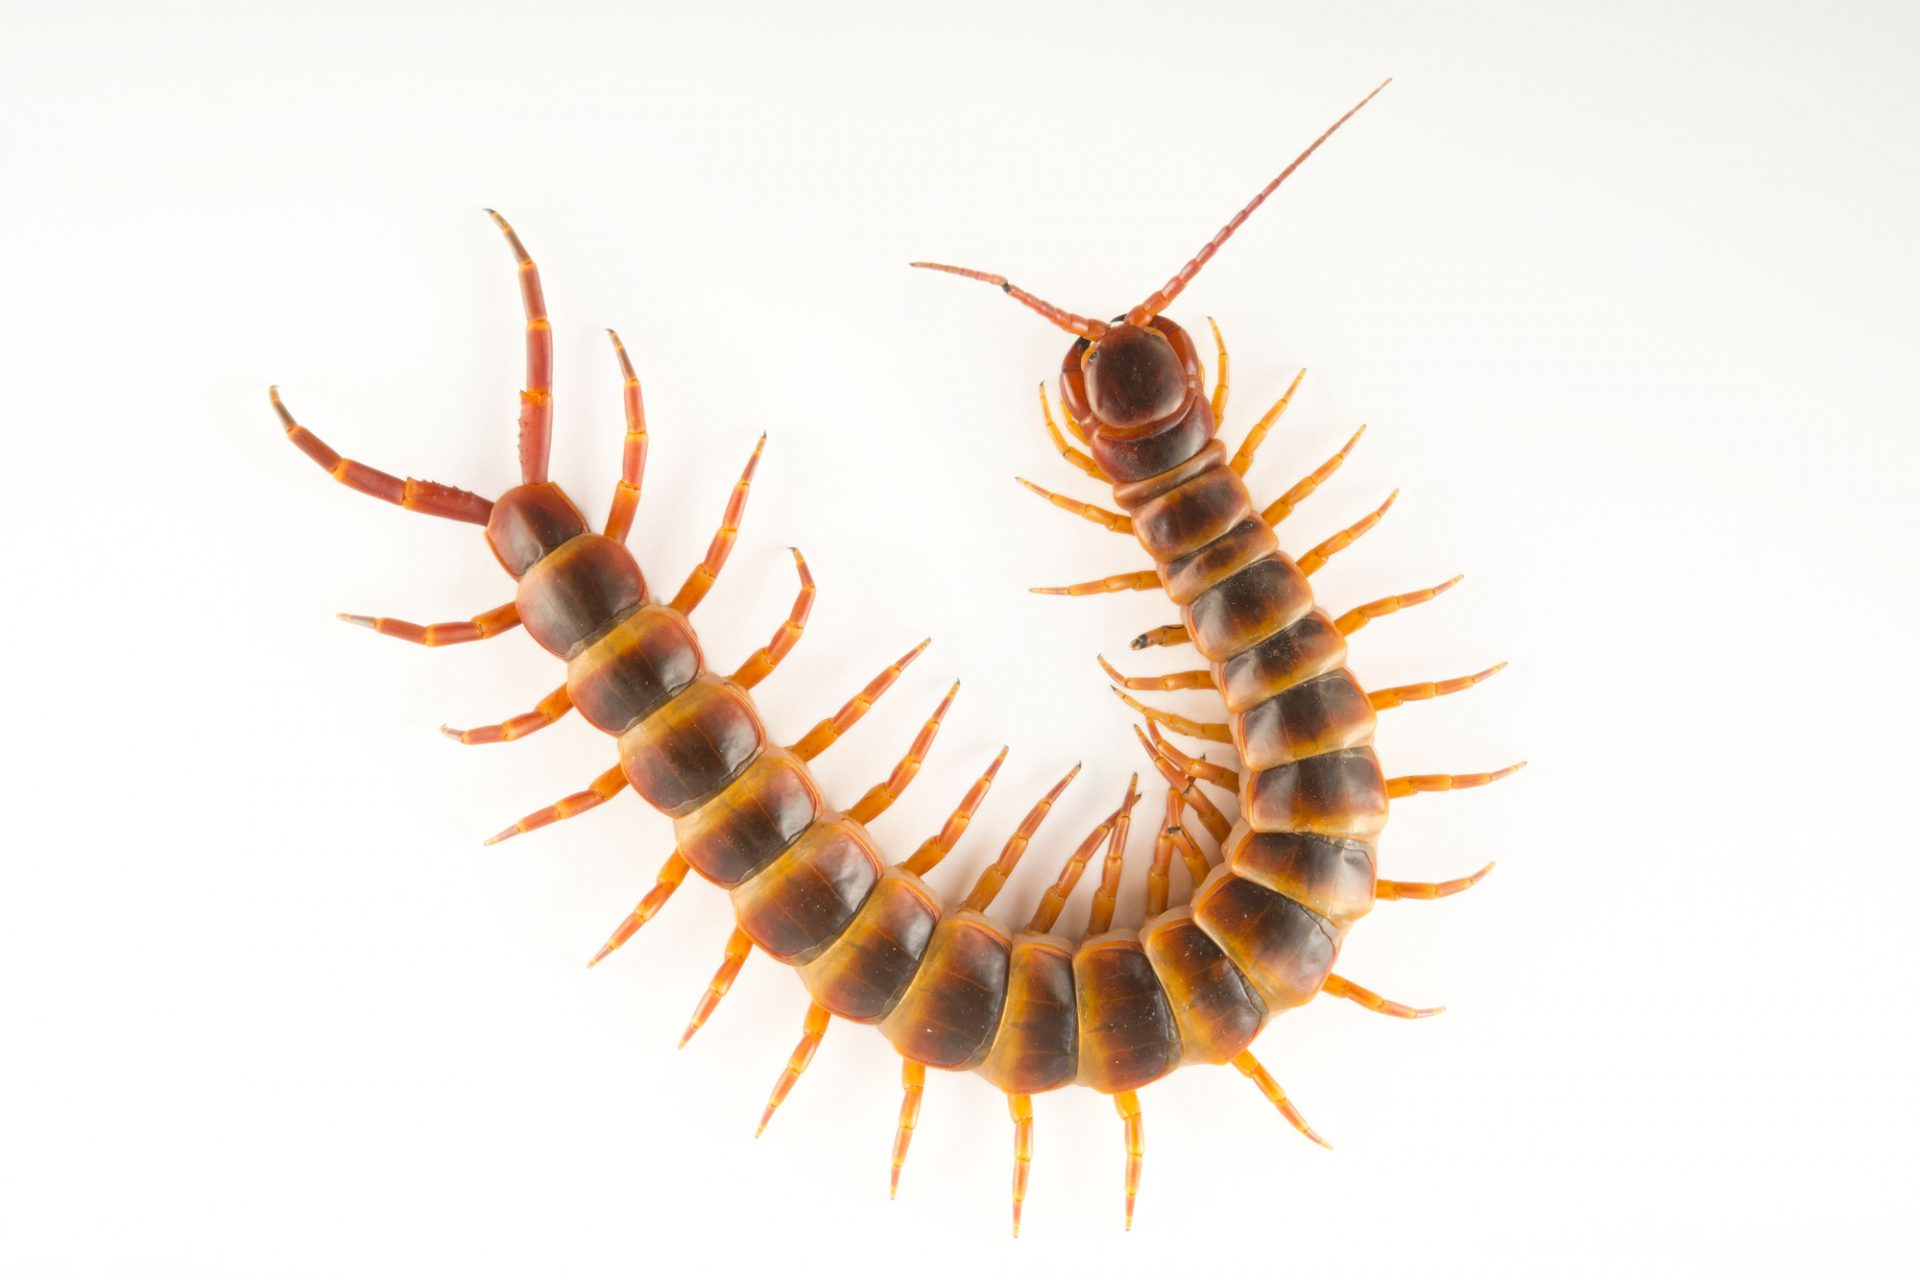 Picture of a Peruvian giant yellow-leg centipede or Amazonian giant centipede (Scolopendra gigantea) at the National Aviary of Colombia.